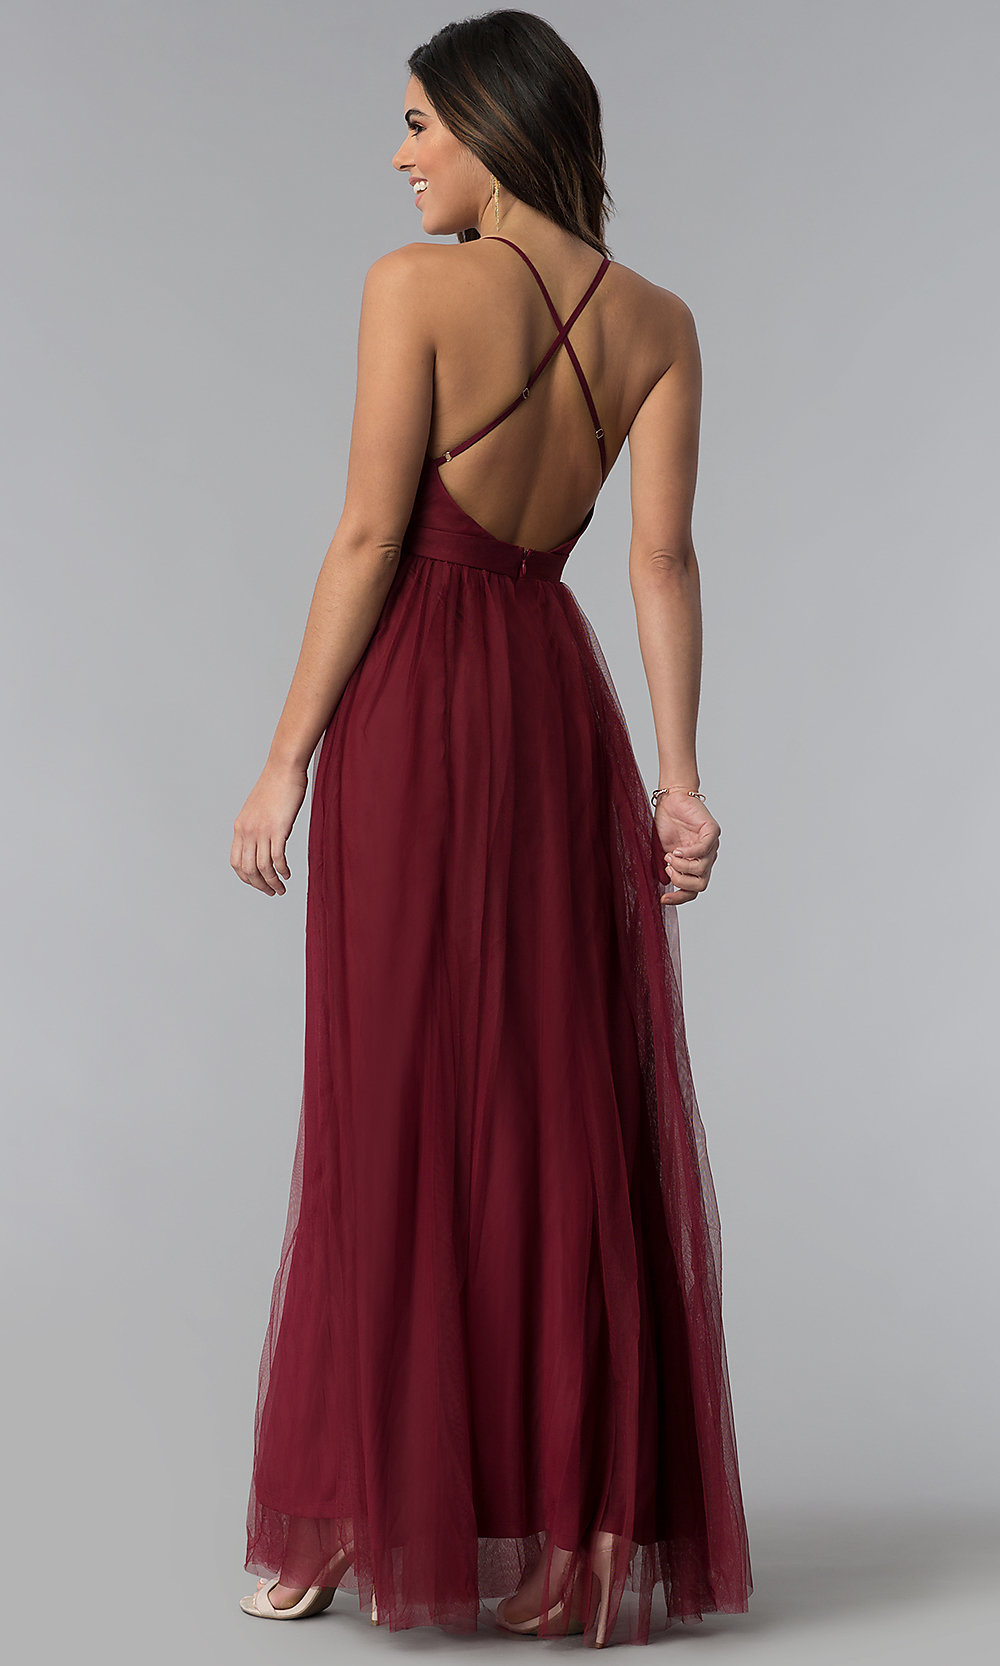 Sexy Prom Dress With Deep V-Neckline - PromGirl